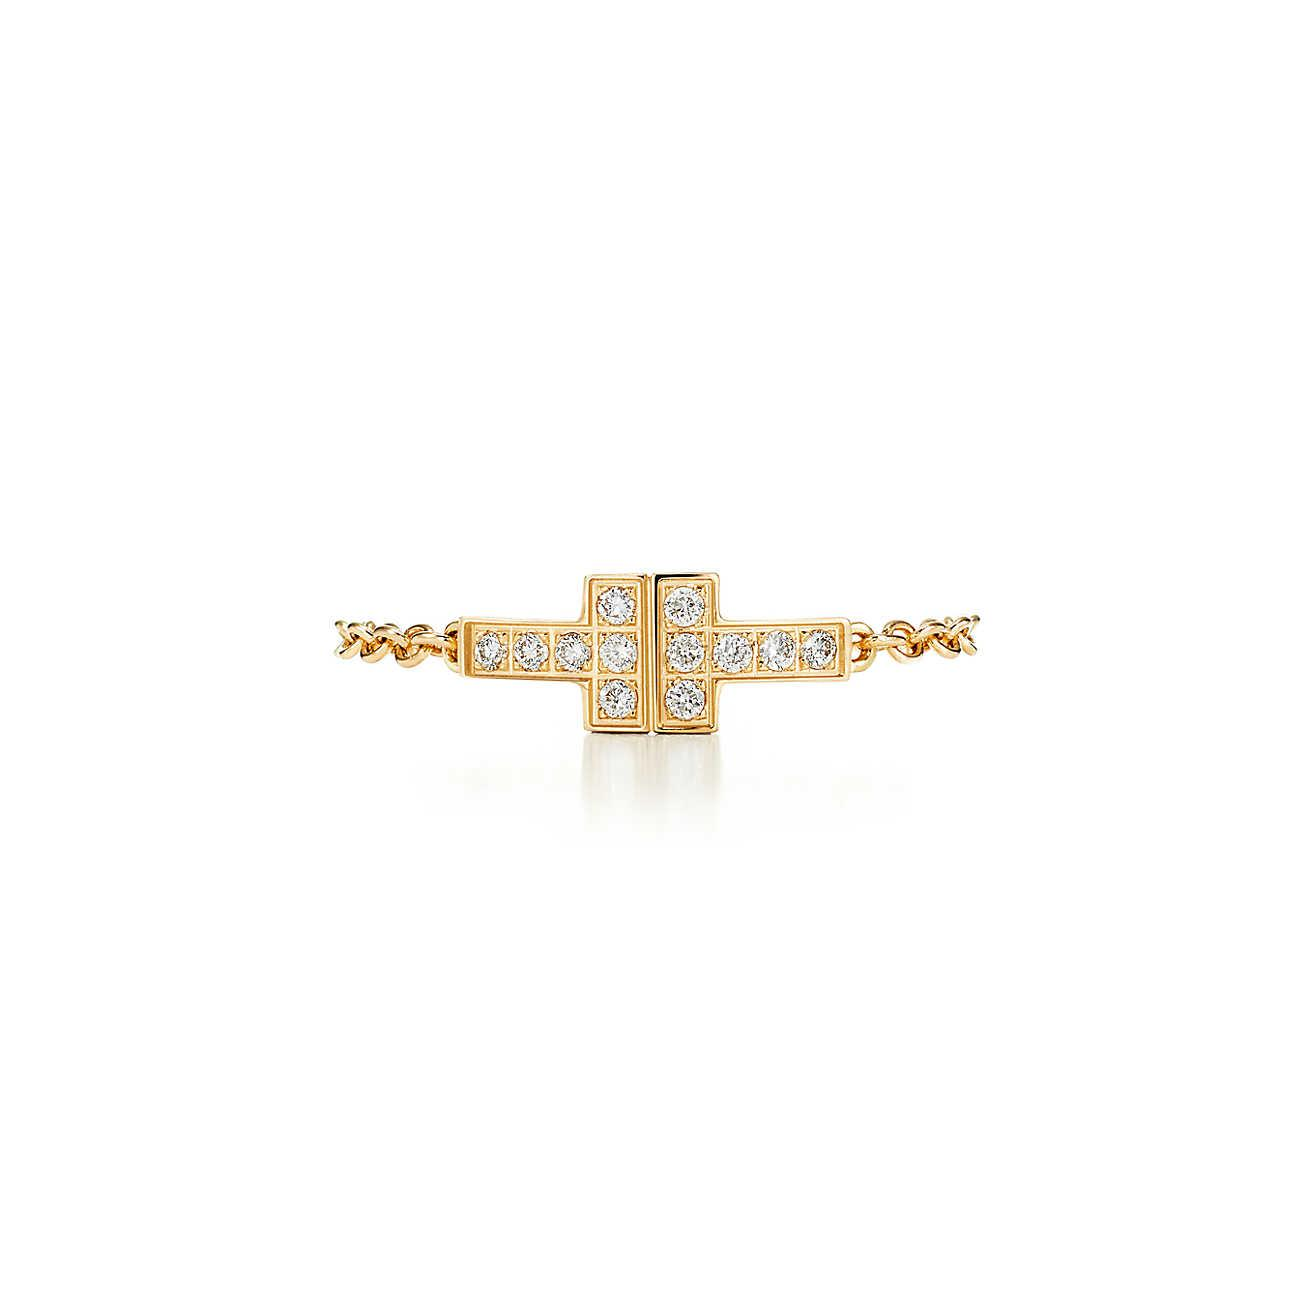 32c598b2b Tiffany & Co. Tiffany T Two Chain Ring In 18k Gold With Diamonds ...